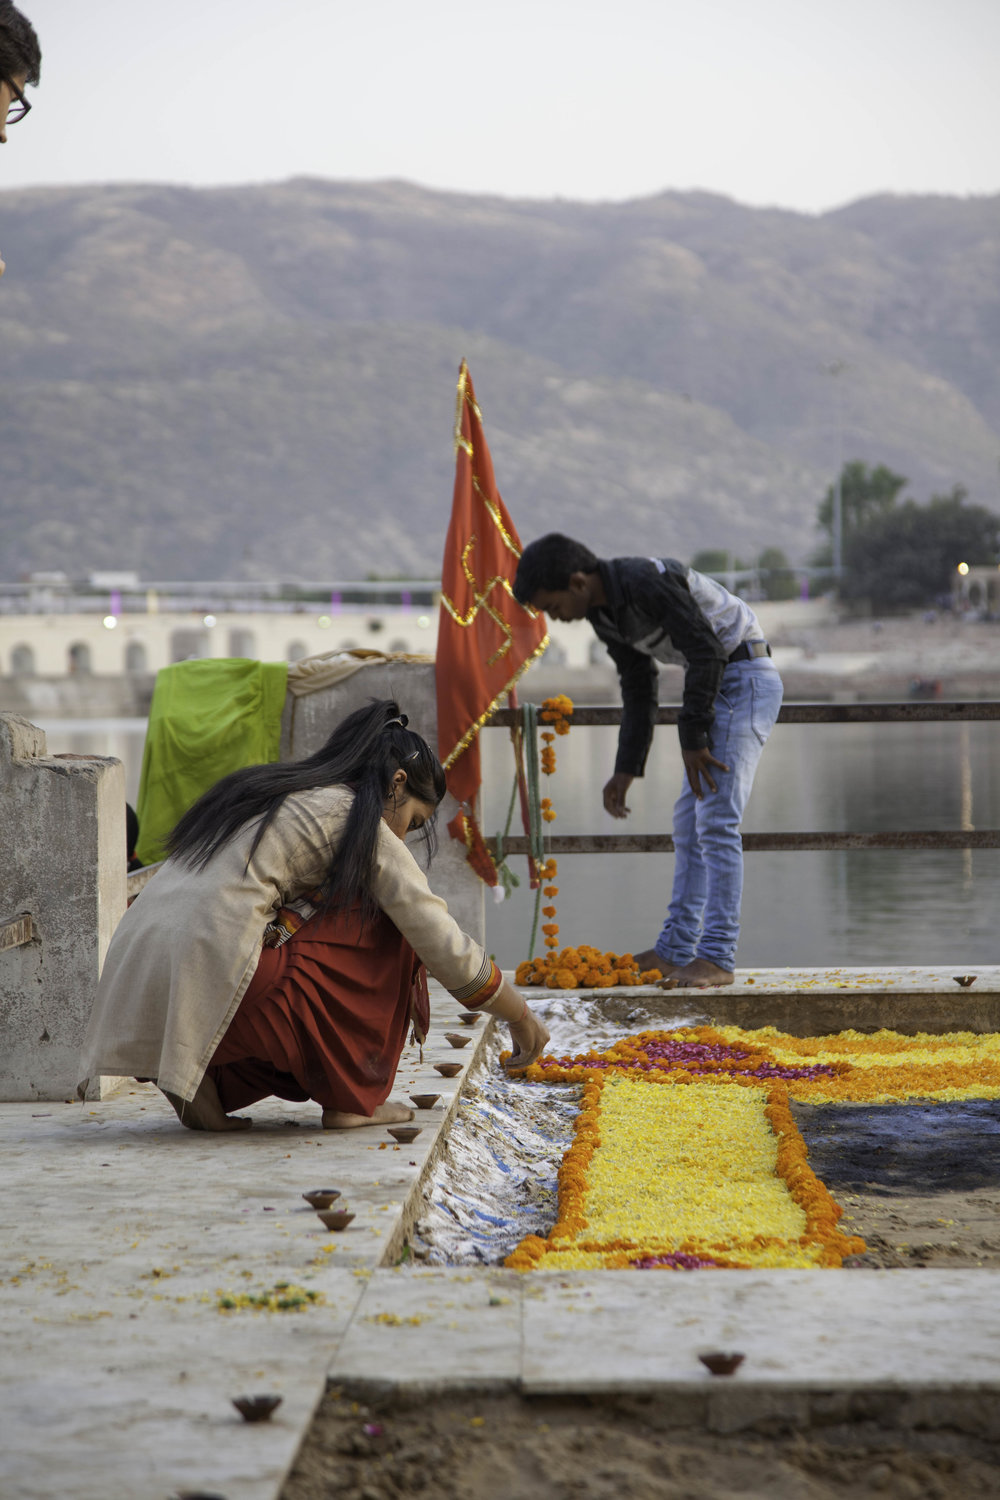 Decorating the ghats with flowers and pigments